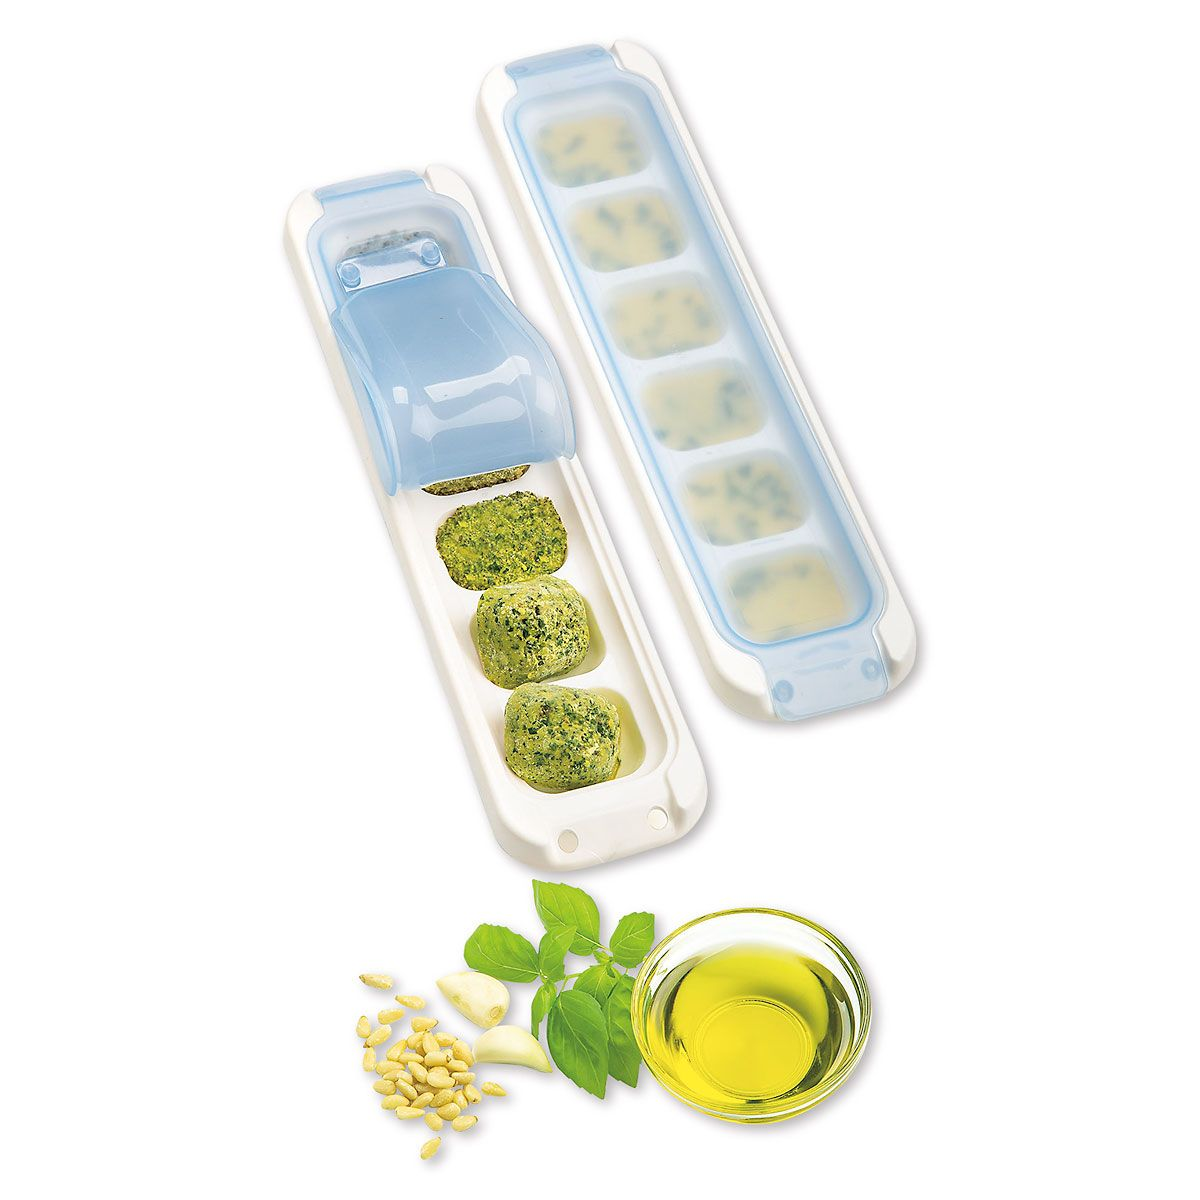 Freezer Portion Pods